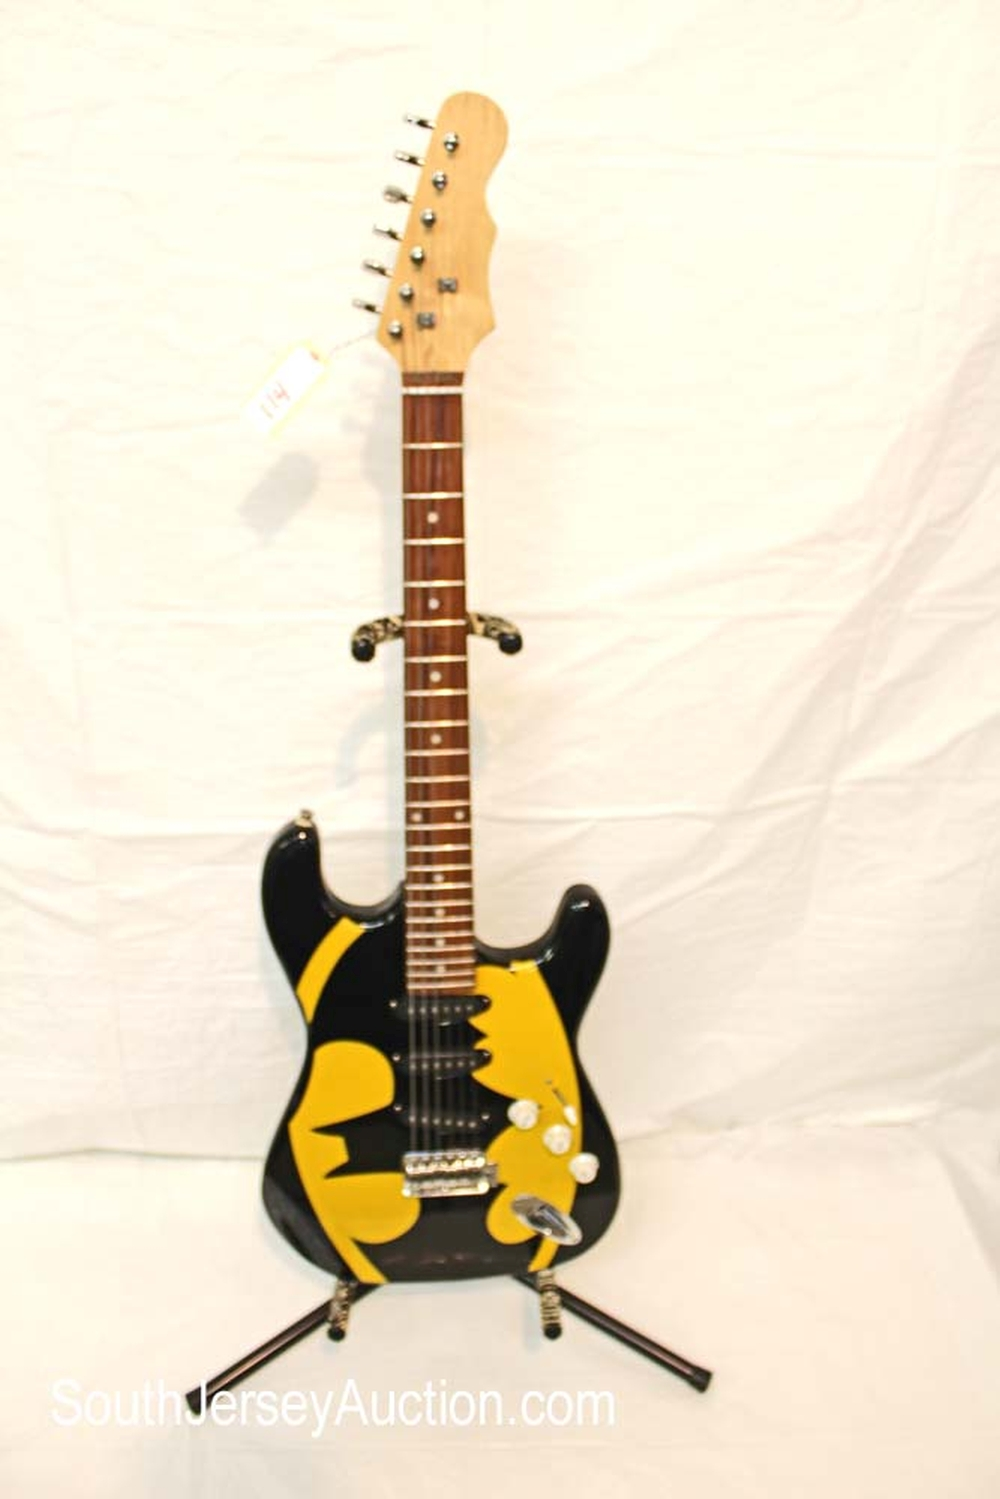 Batman guitar, year unknown, maker unknown, serial number unknown no strap